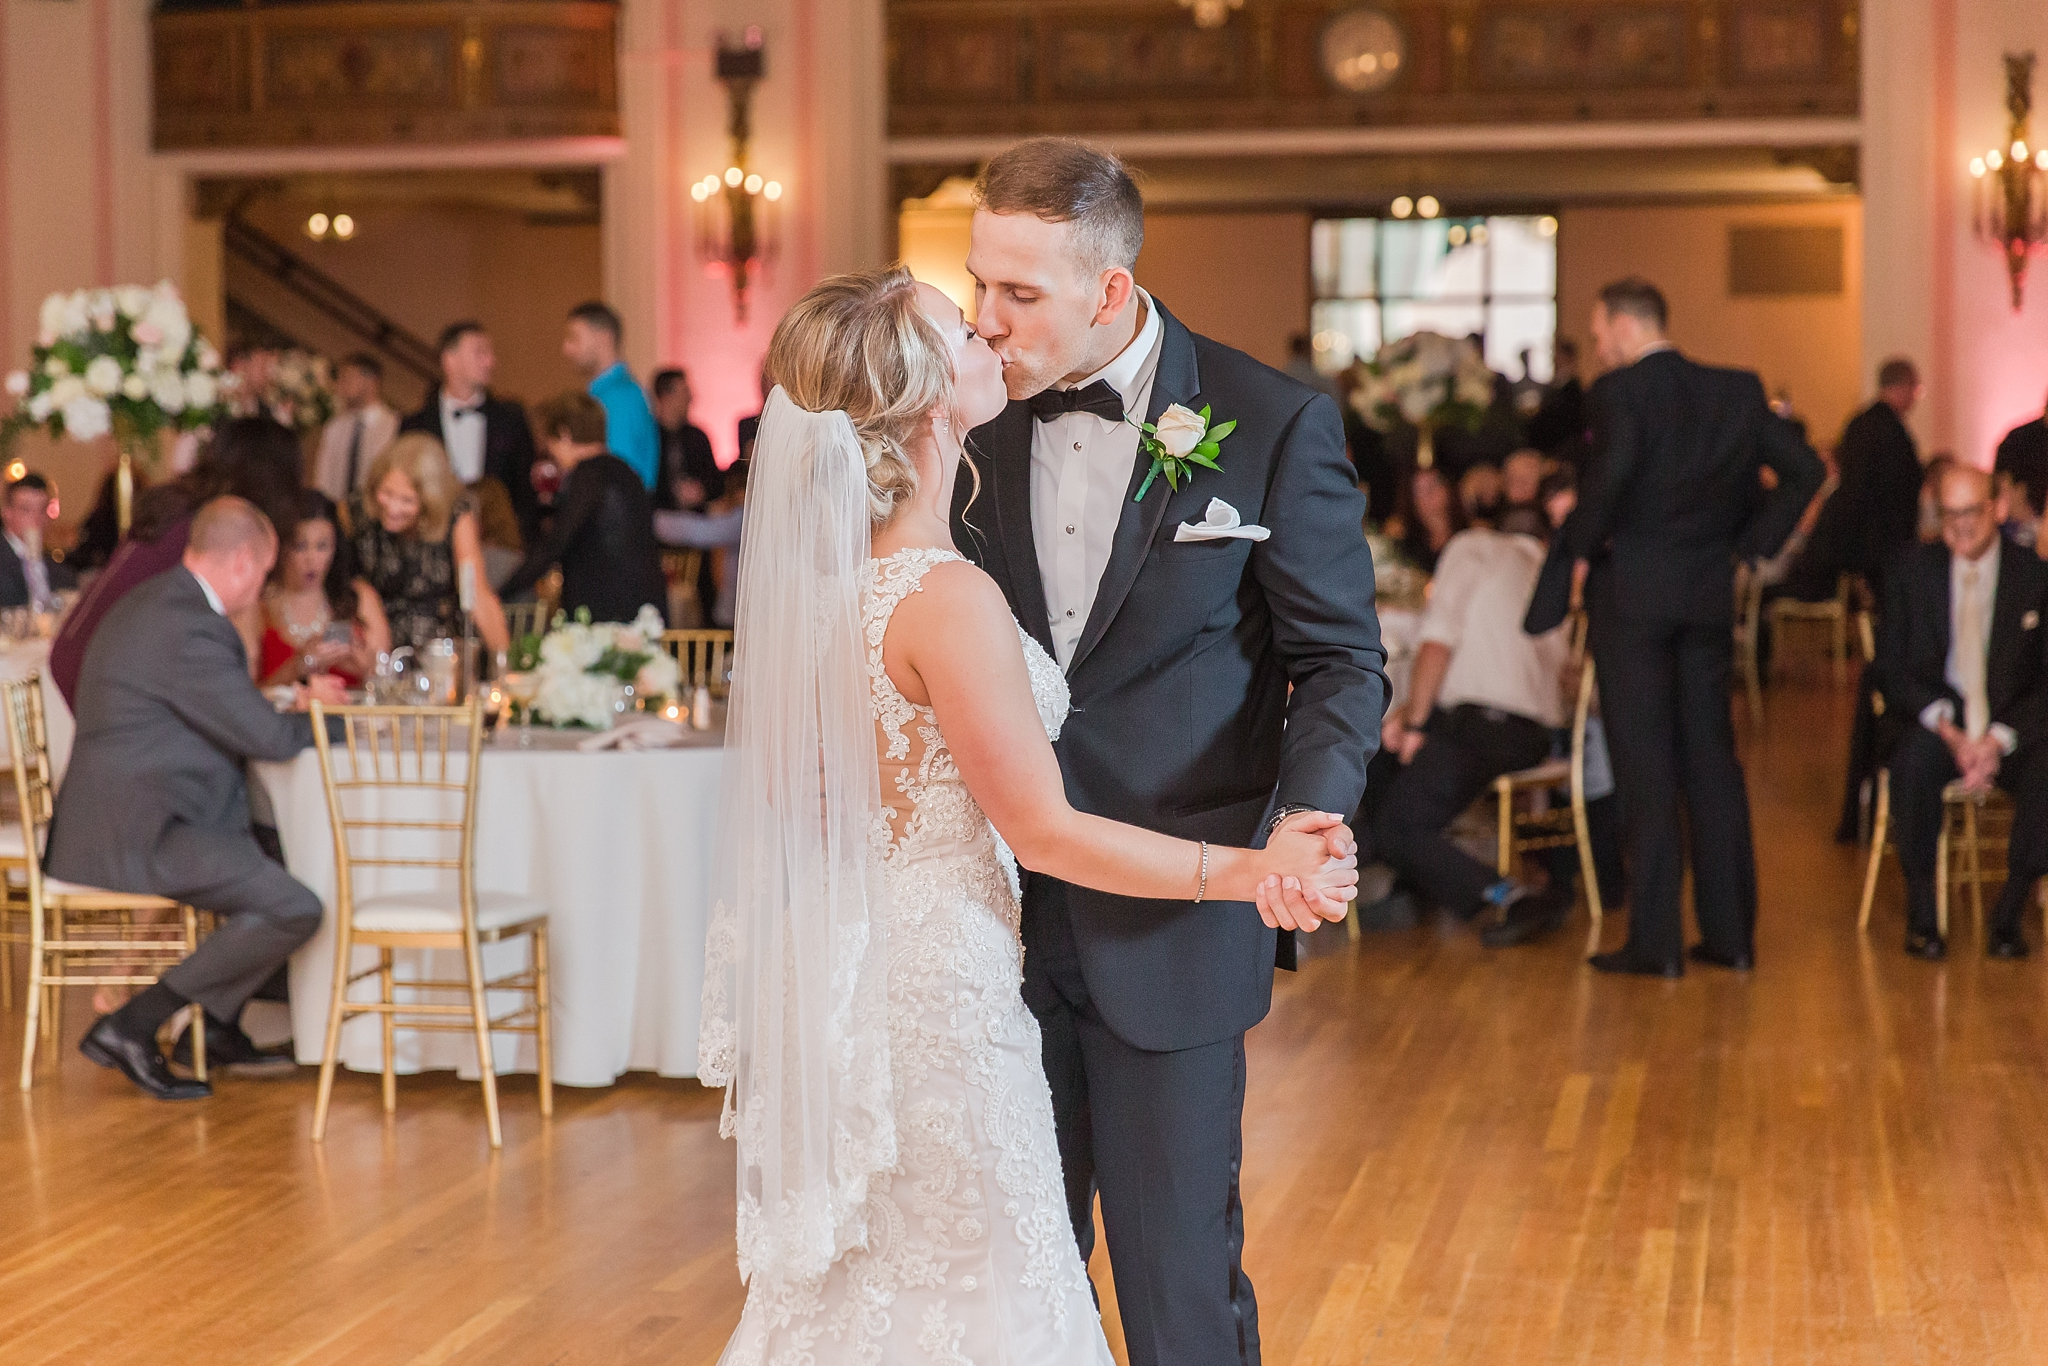 candid-romantic-wedding-photos-at-the-masonic-temple-belle-isle-detroit-institute-of-arts-in-detroit-michigan-by-courtney-carolyn-photography_0116.jpg